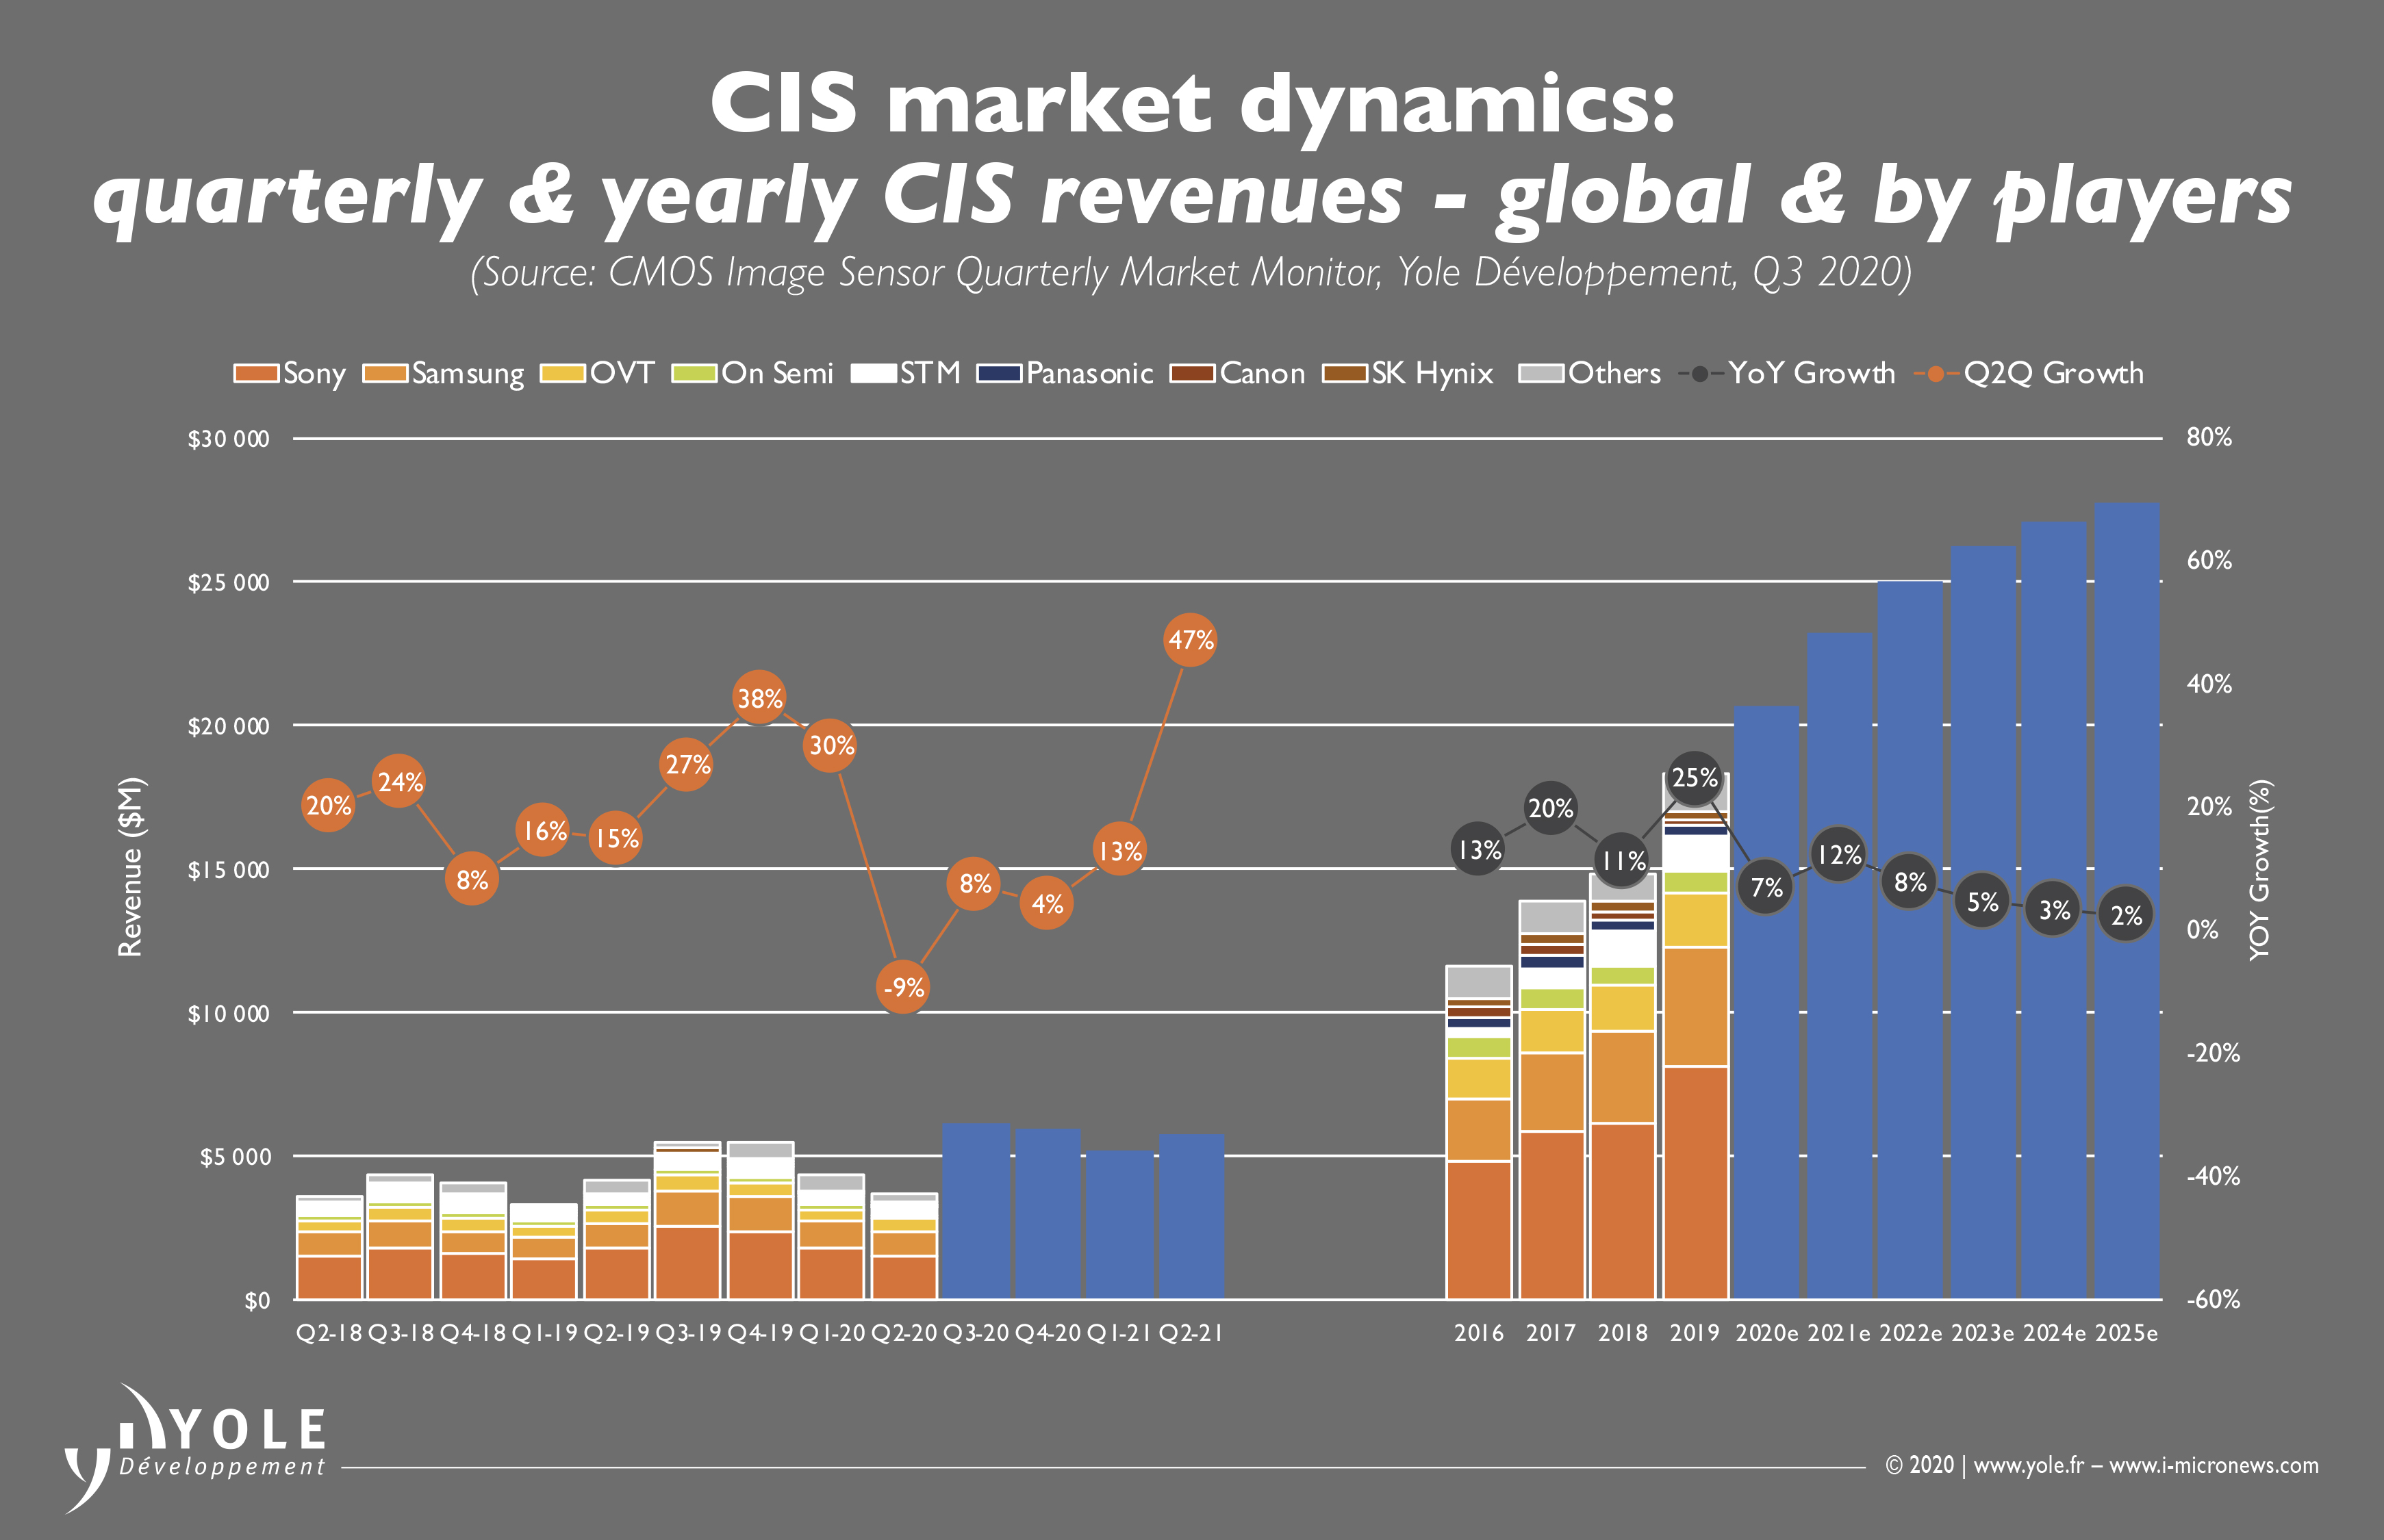 ILLUS_CIS_MONITOR_Quartely_Yearly_Revenues_Global_ByPlayers_YOLE_Nov2020